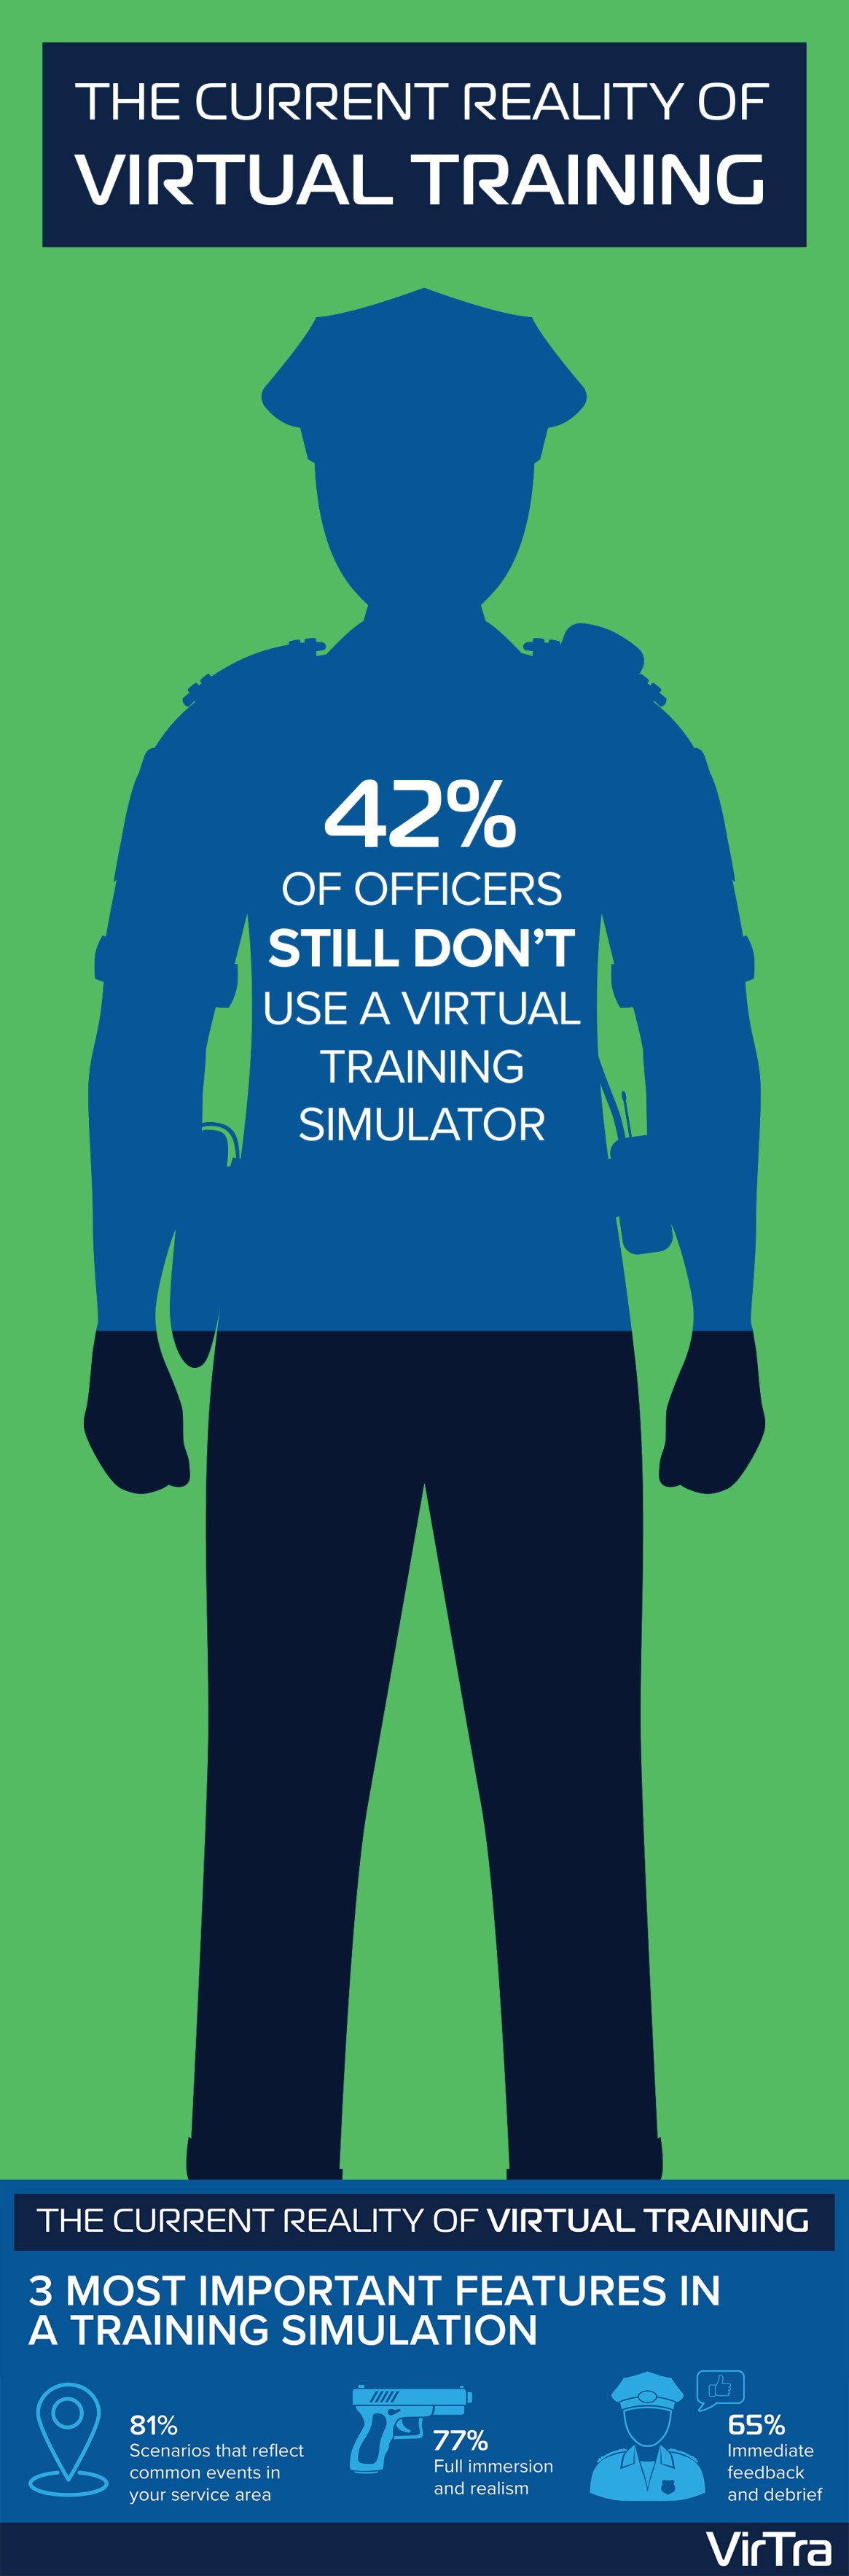 The Current Reality of Virtual Training